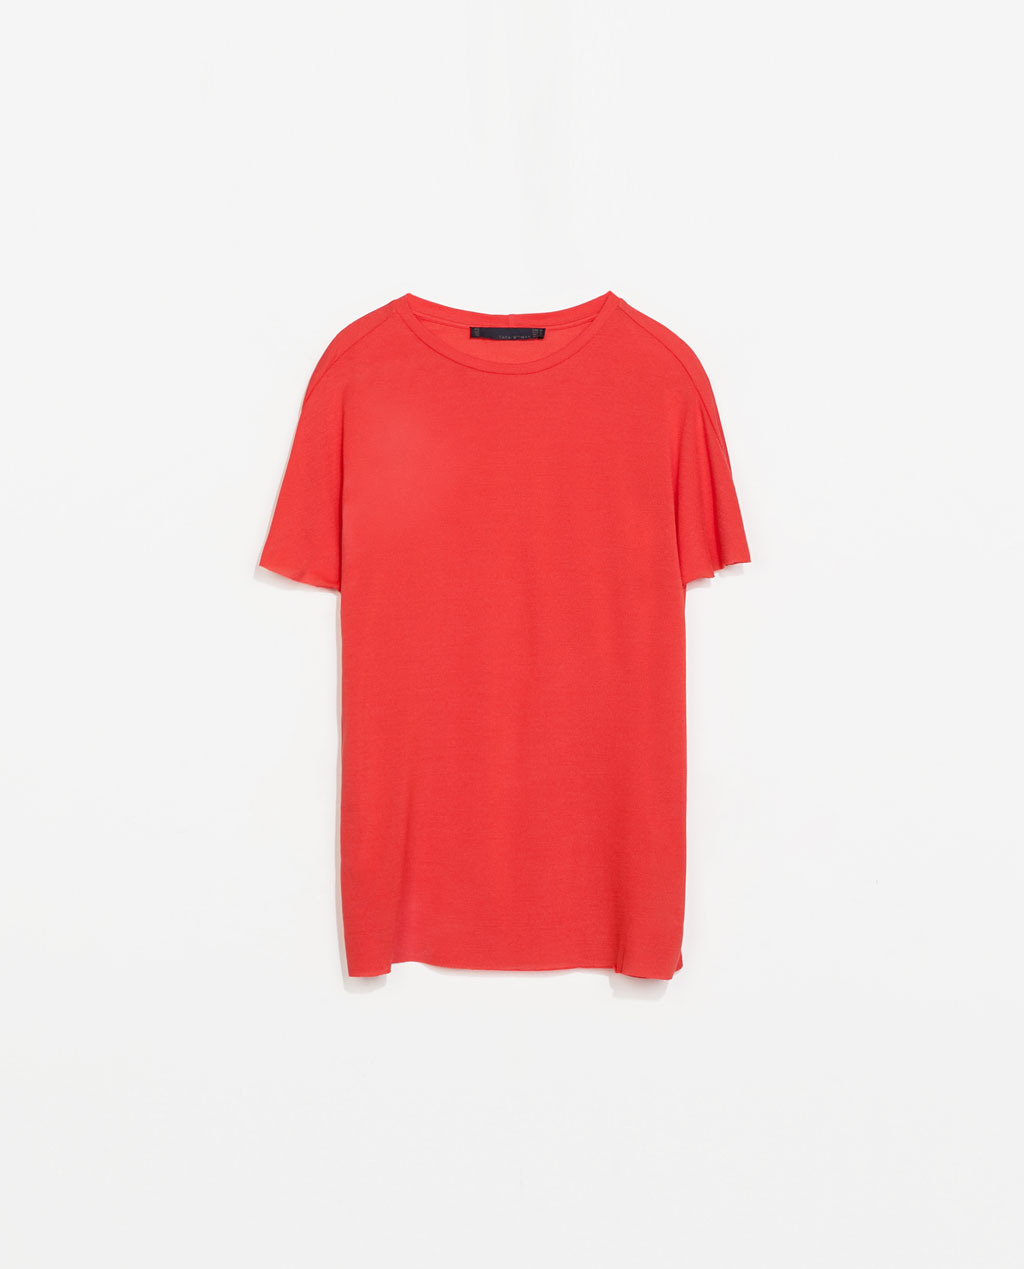 Pique Studio T Shirt - neckline: round neck; pattern: plain; length: below the bottom; style: t-shirt; predominant colour: true red; occasions: casual, holiday, creative work; fibres: silk - mix; fit: straight cut; sleeve length: short sleeve; sleeve style: standard; texture group: silky - light; trends: hot brights; season: s/s 2014